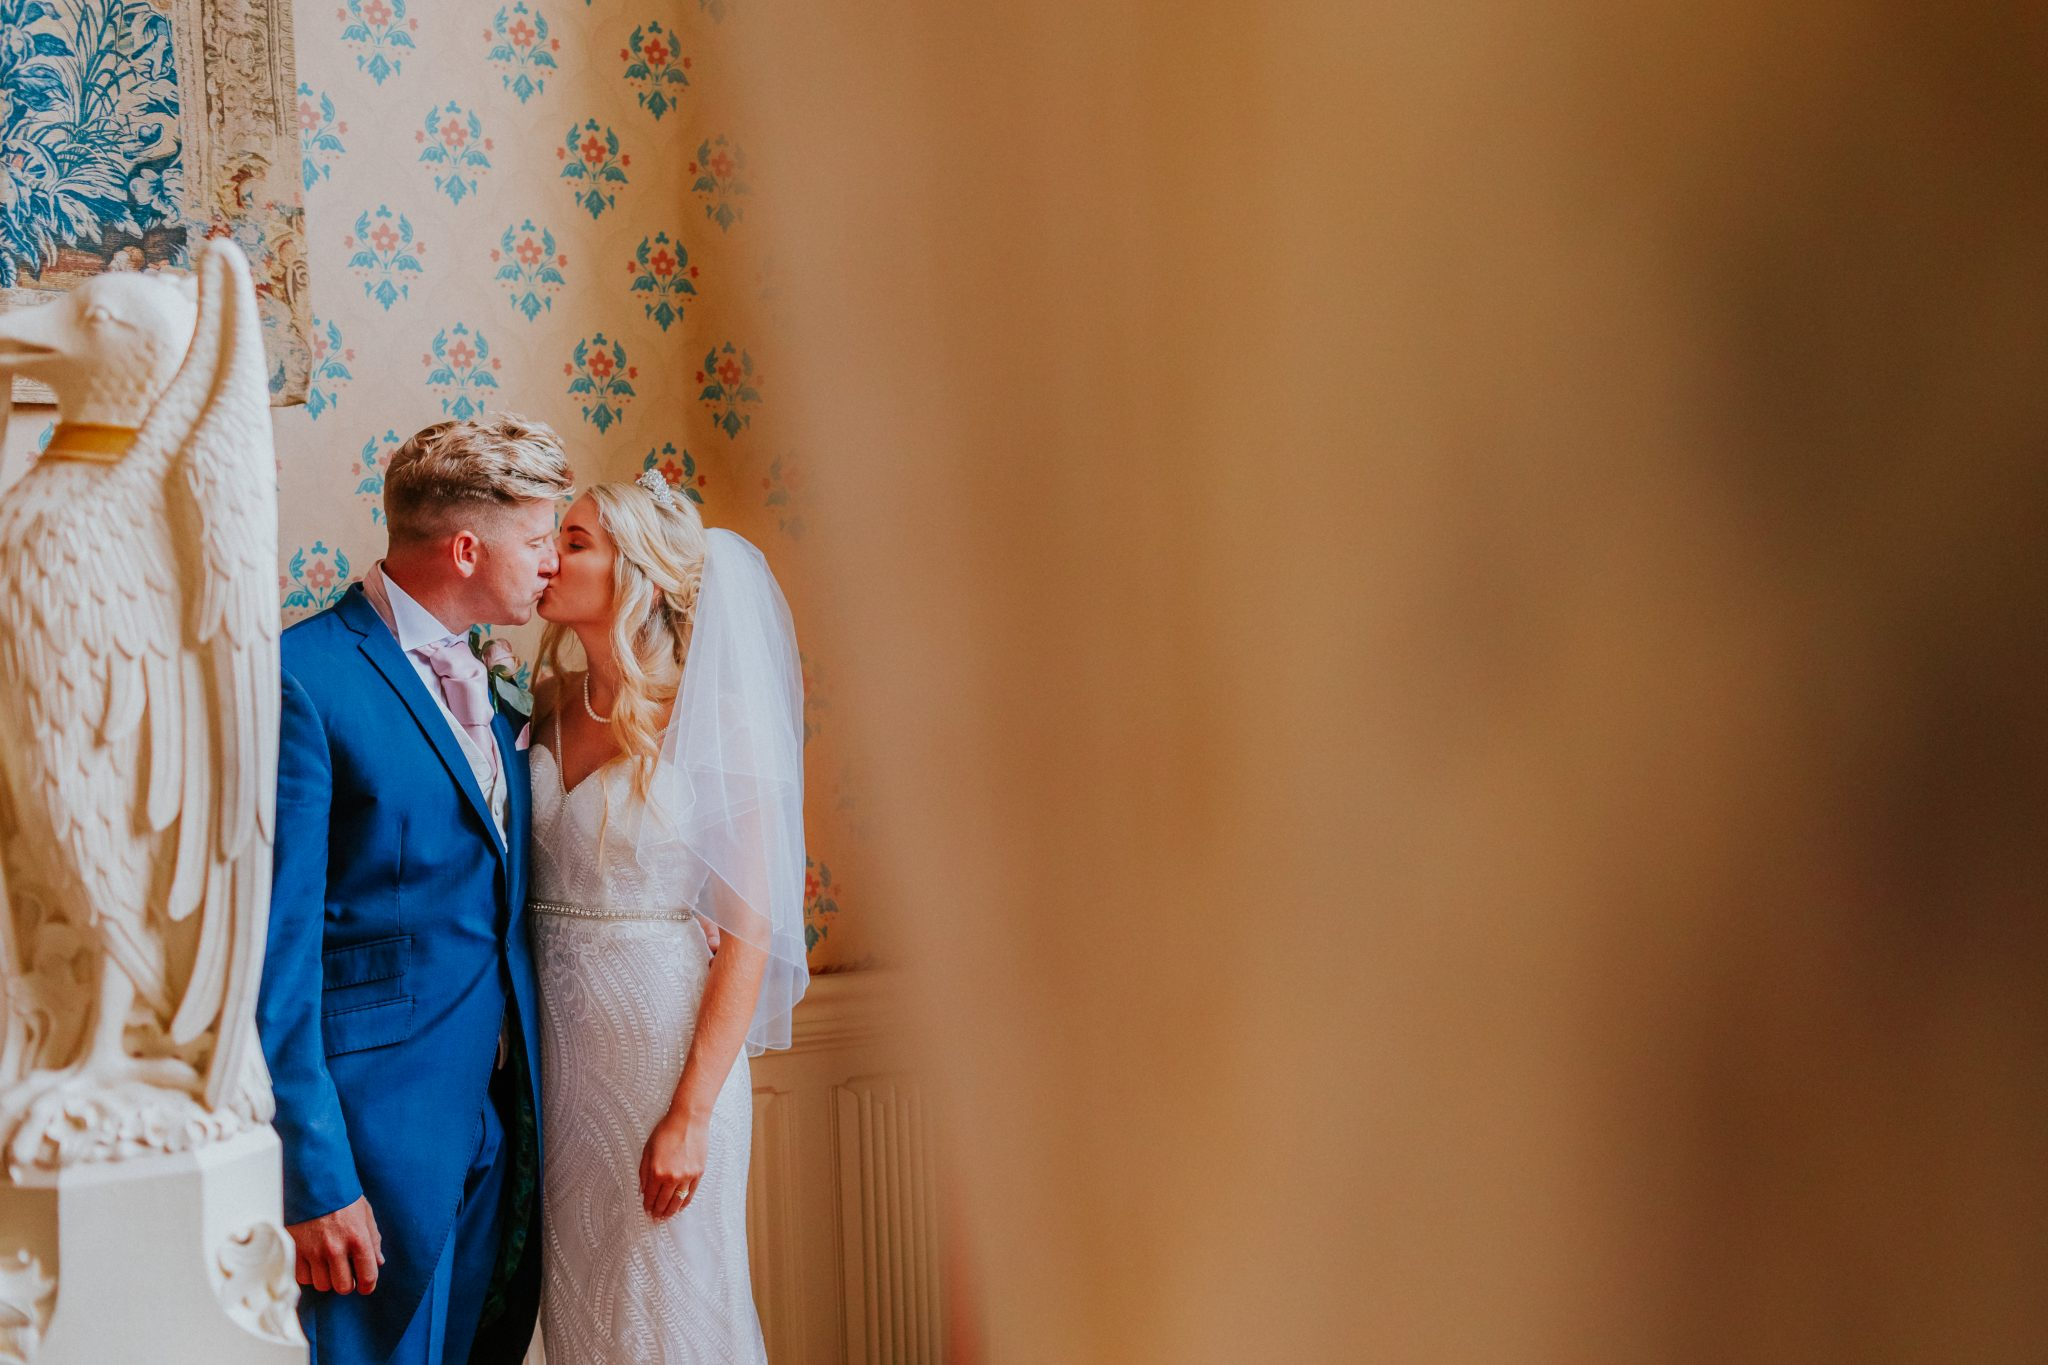 S Butler Photography - Sussex Wedding Photographer - Zak & Heidi - Horsted Place 001